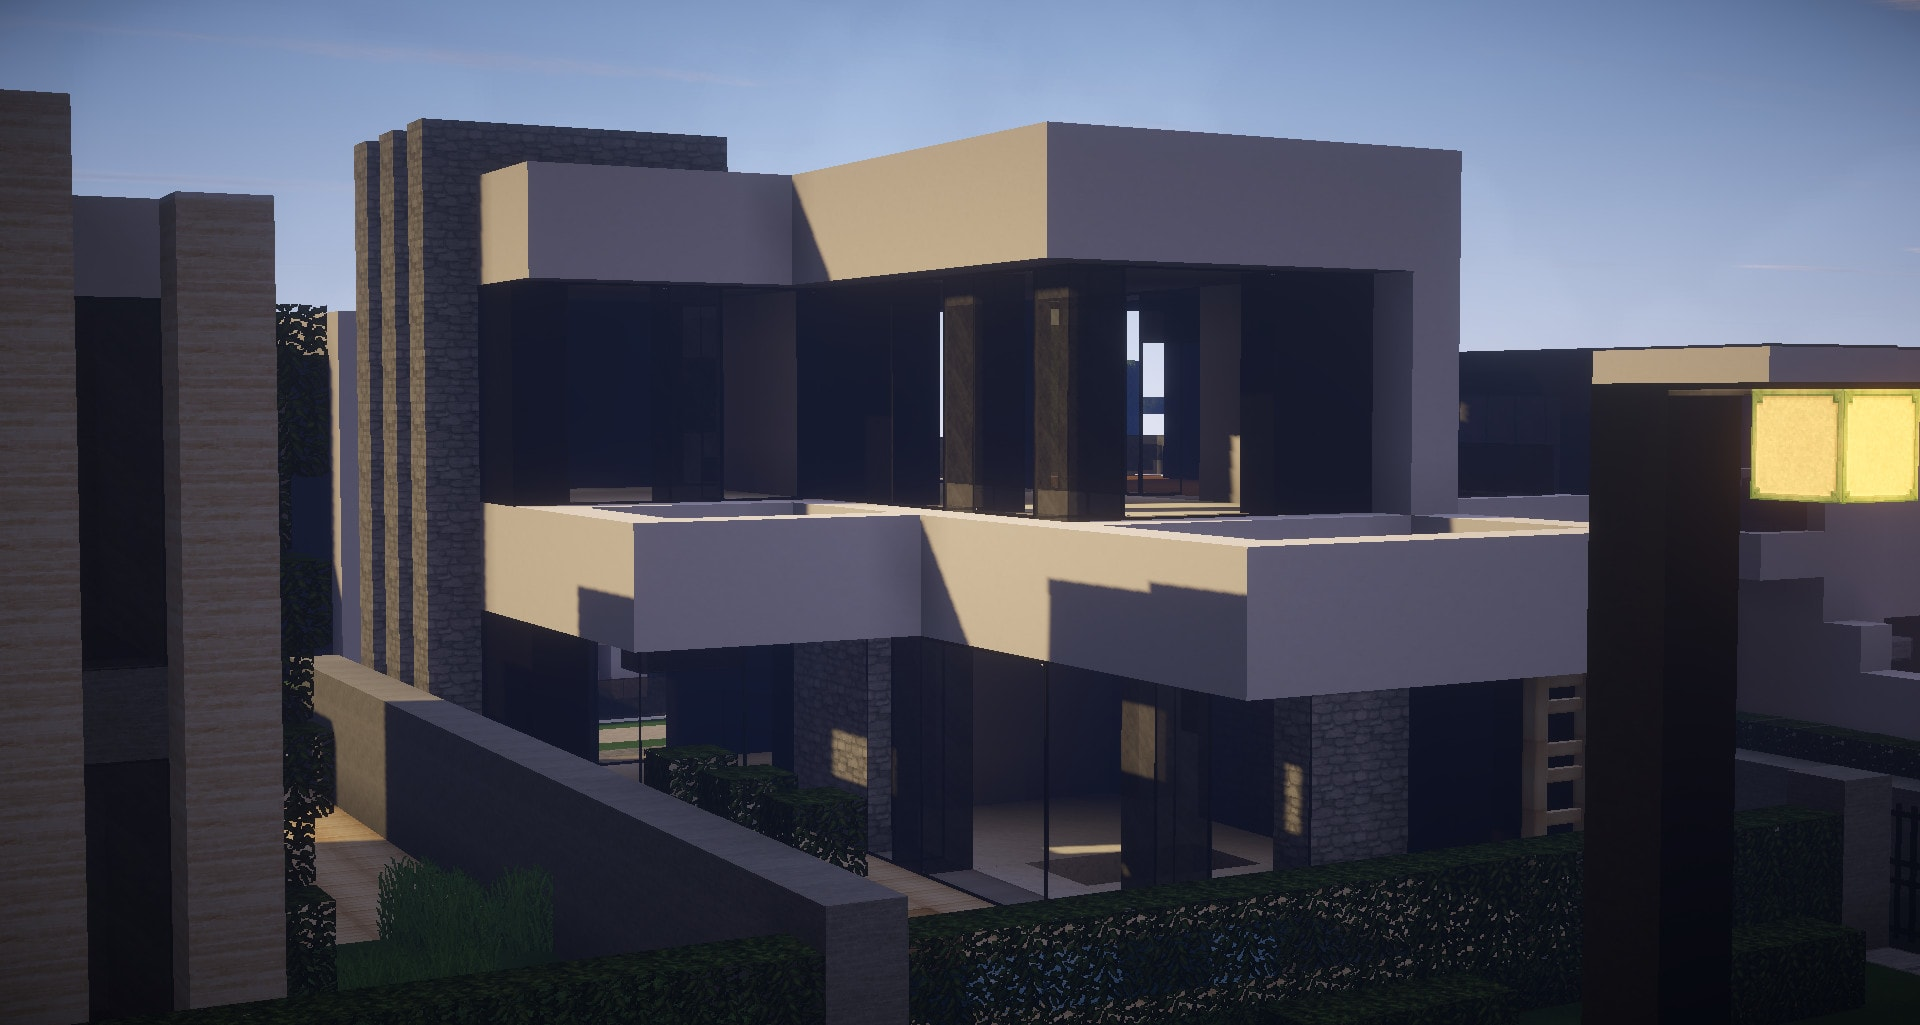 baumkuchen11 : I will build a modern, unique, realistic minecraft house  for you for $11 on fiverr.com